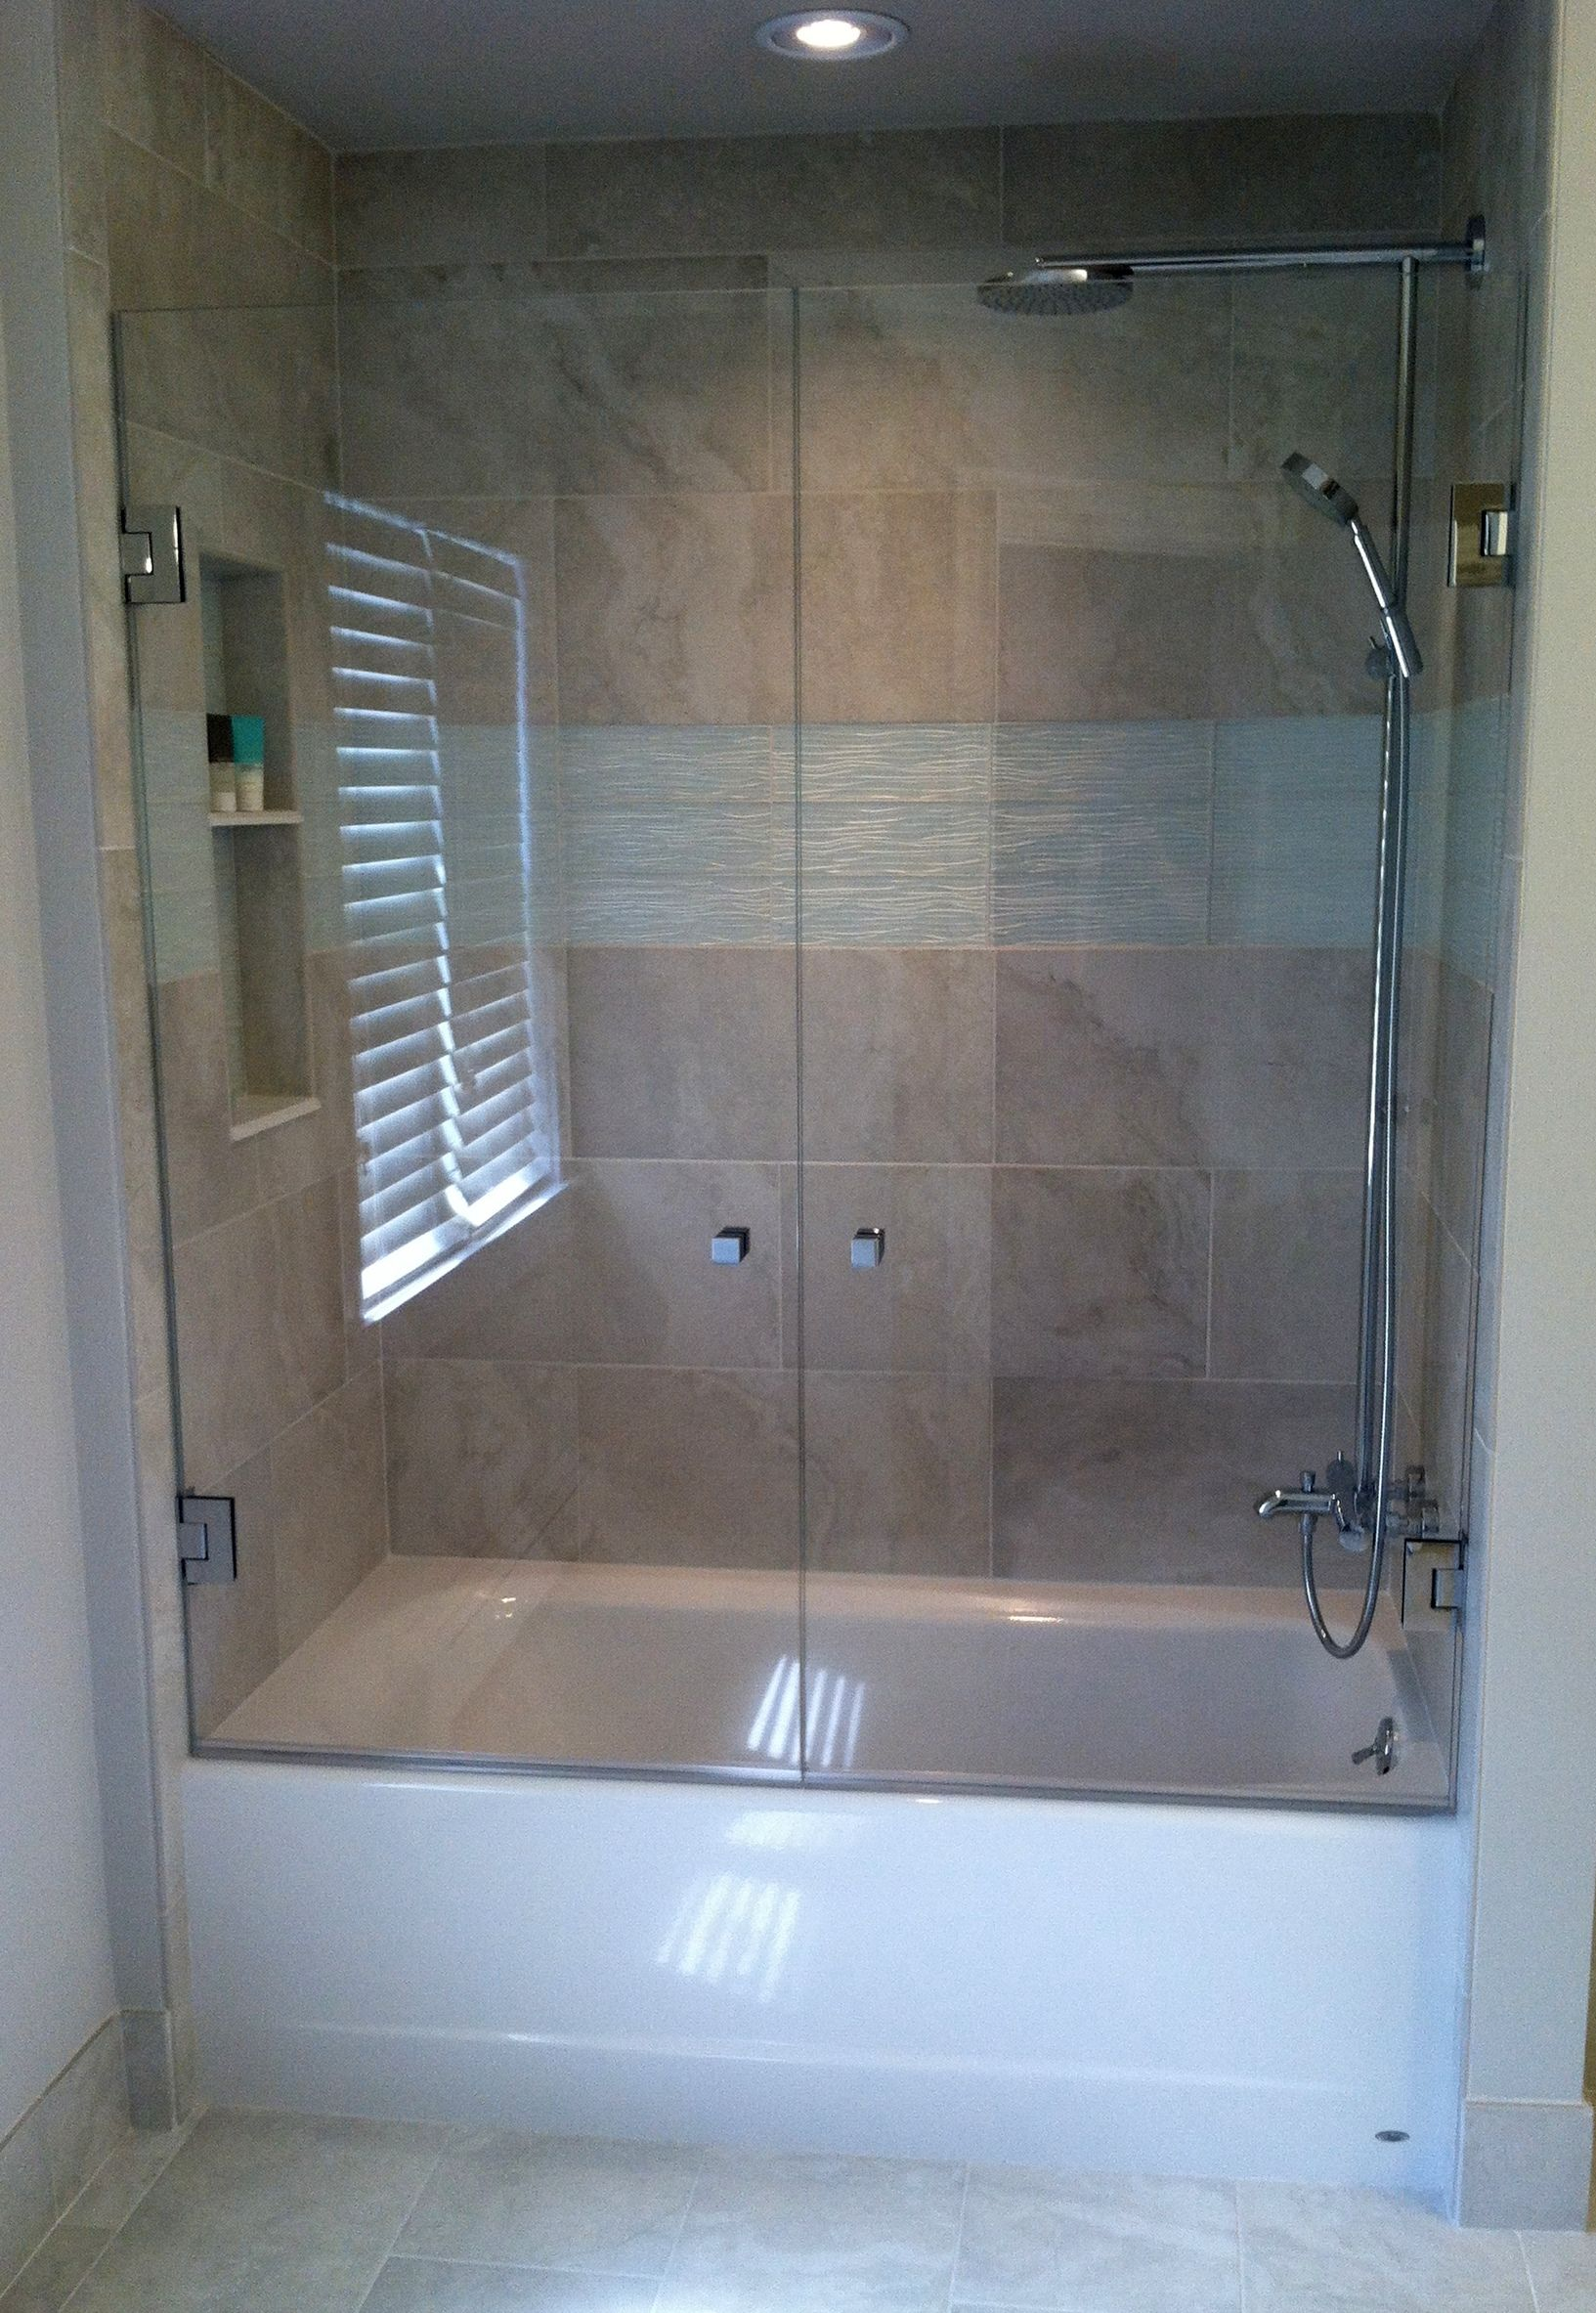 French Shower Doors Mount A Swing Door On Each Wall To Open Up Your Bathtub Space Bathtub Shower Doors Tub With Glass Door Bathroom Remodel Shower